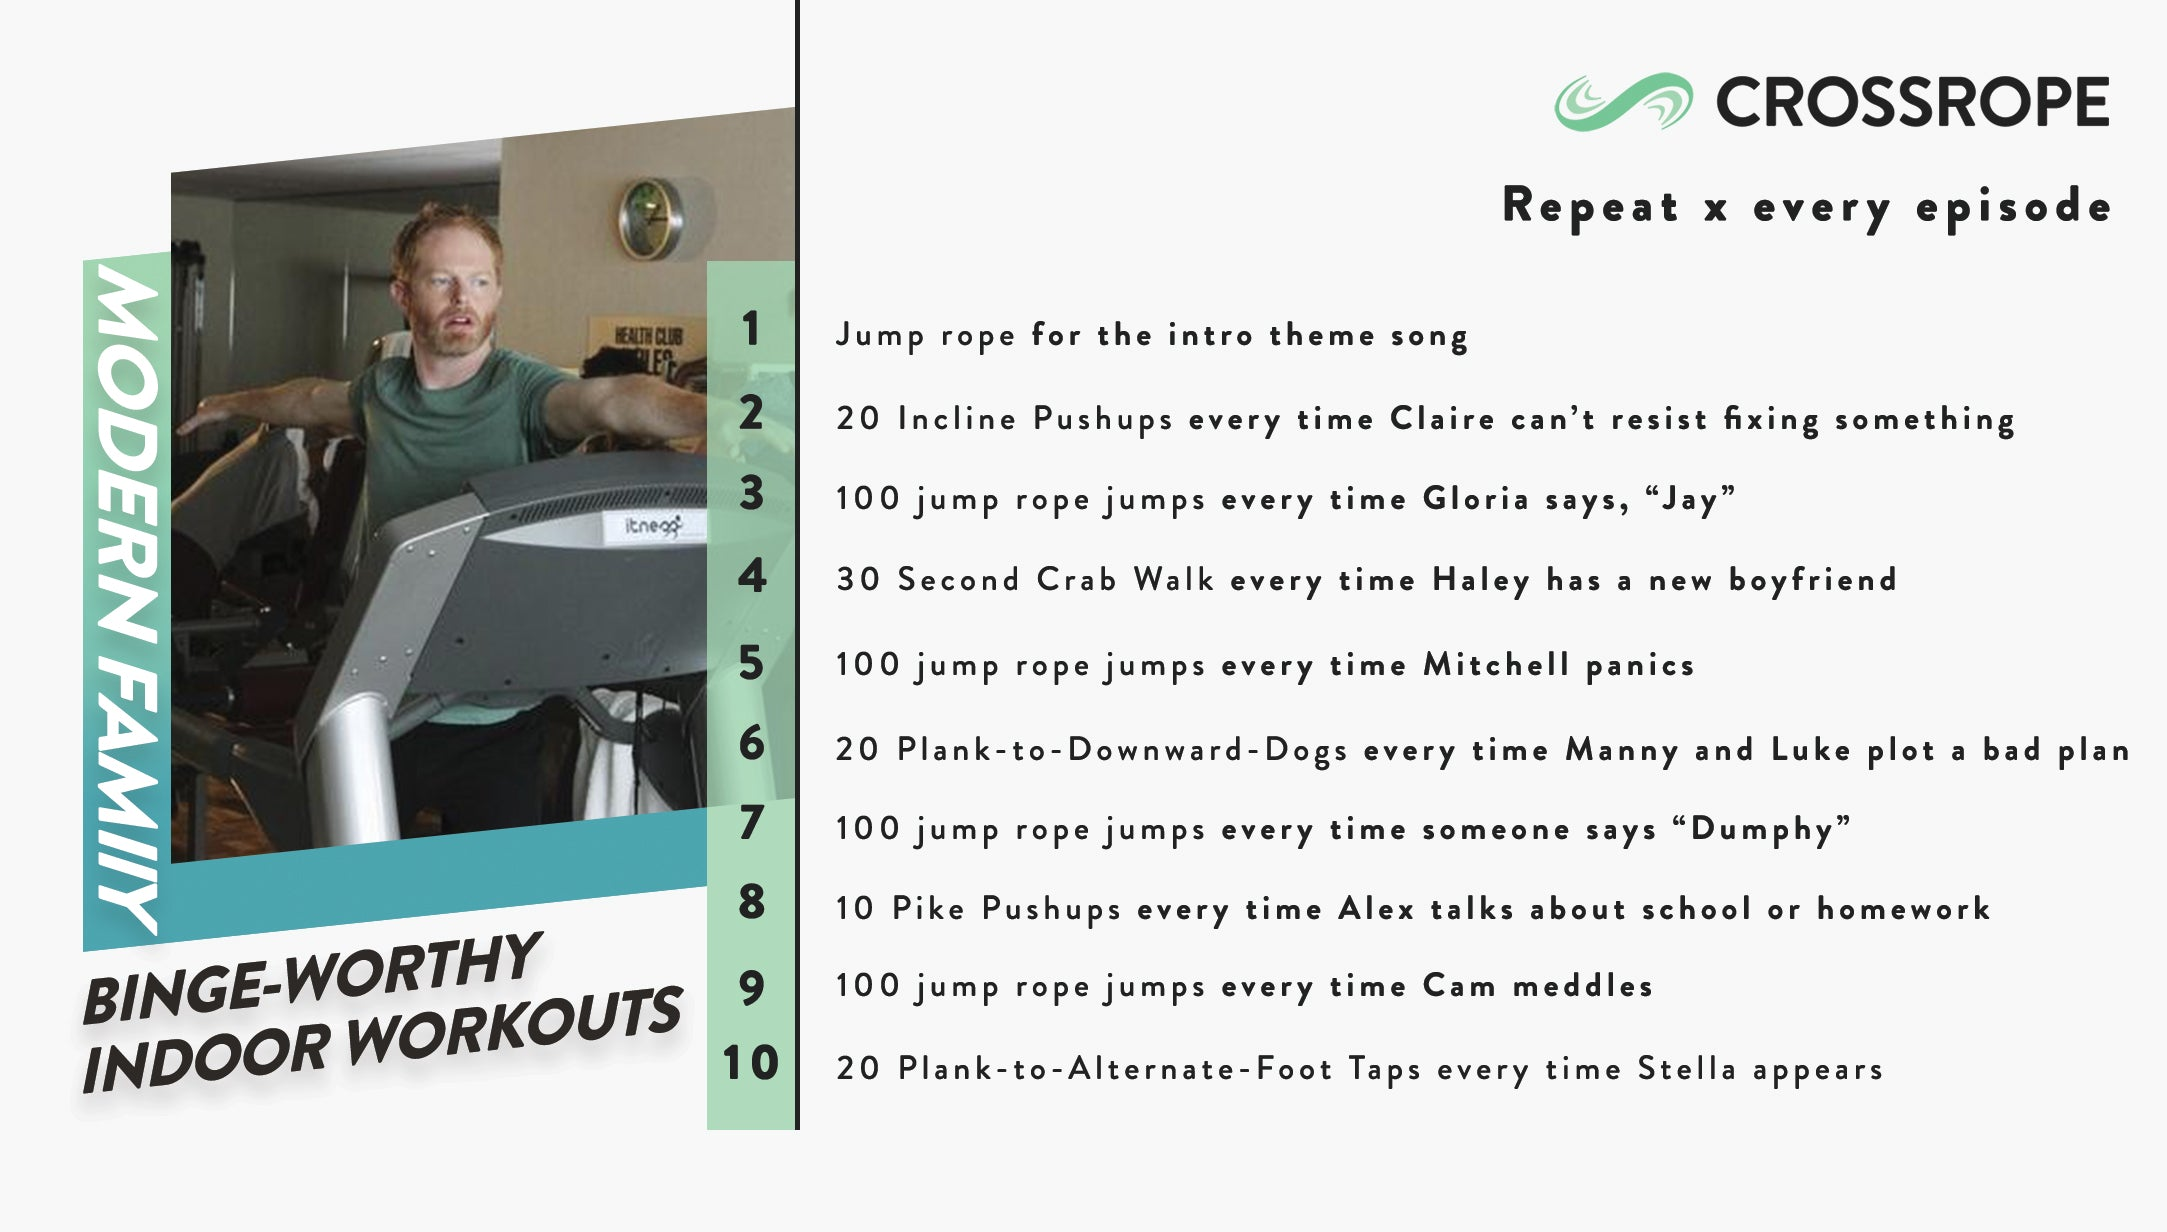 infographic image describing fun indoor workouts you can do while watching the TV show Modern Family